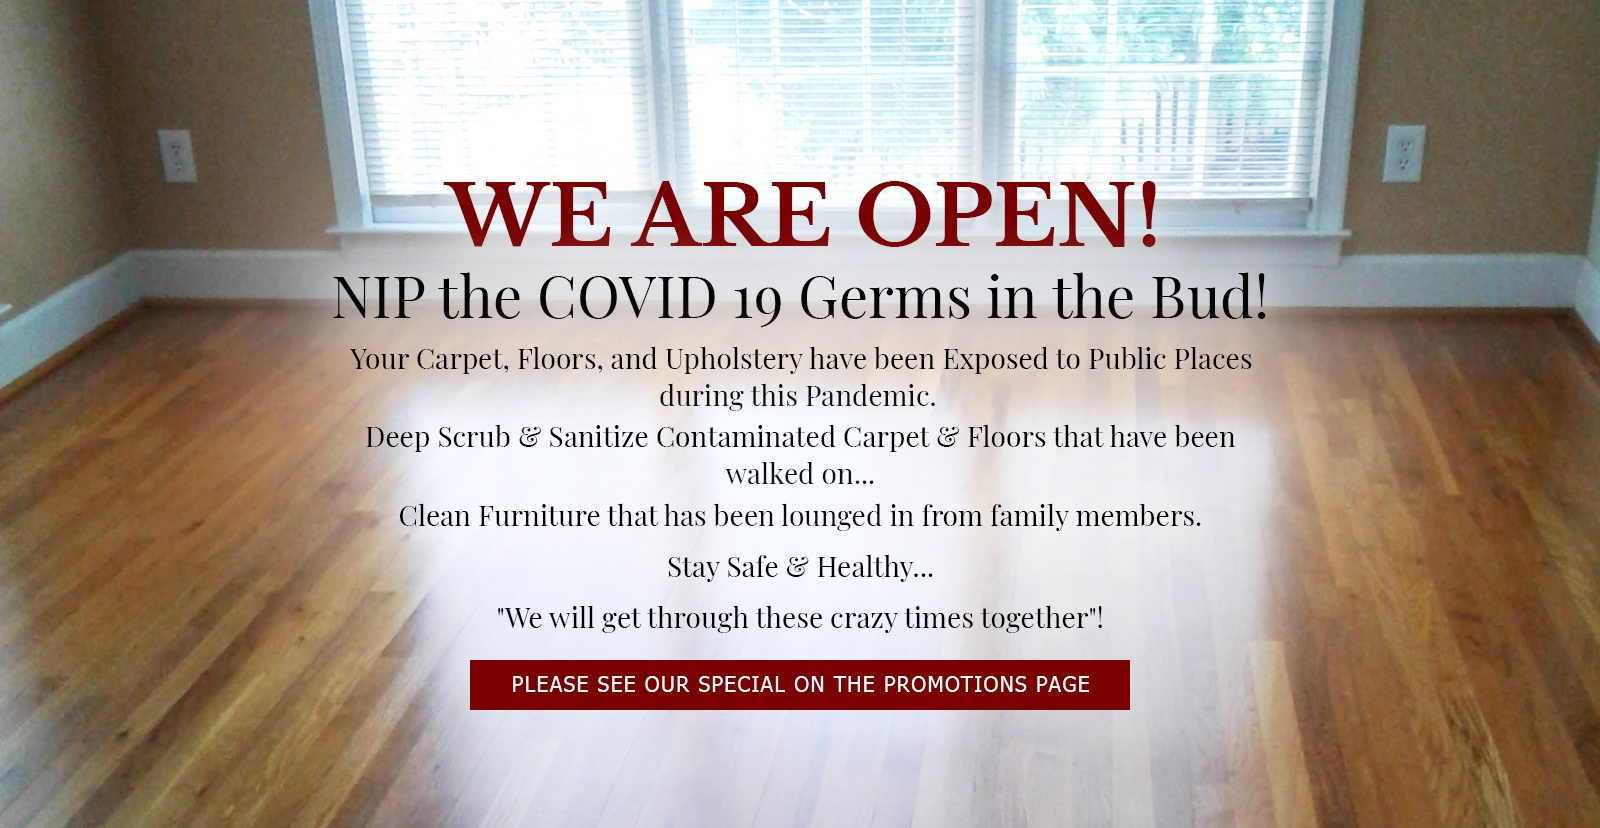 We are open, NIP the COVID 19 Germs in the Bud - Preferred Carpet Cleaning and Floor Care